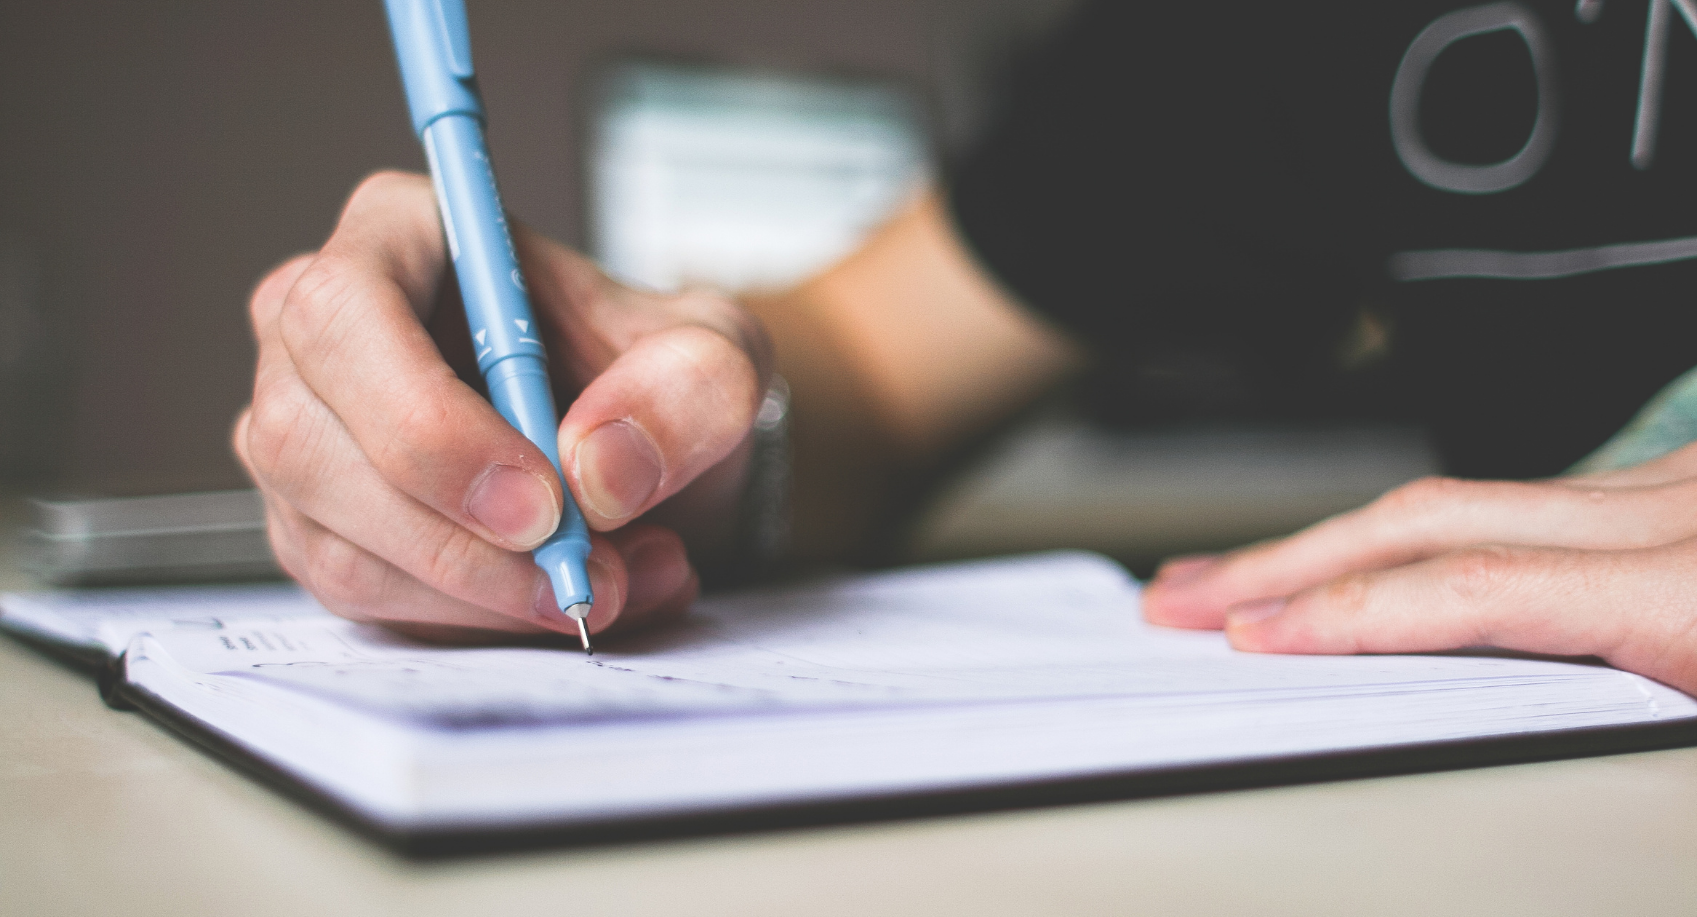 100 Great Personal Essay Topics for College Students